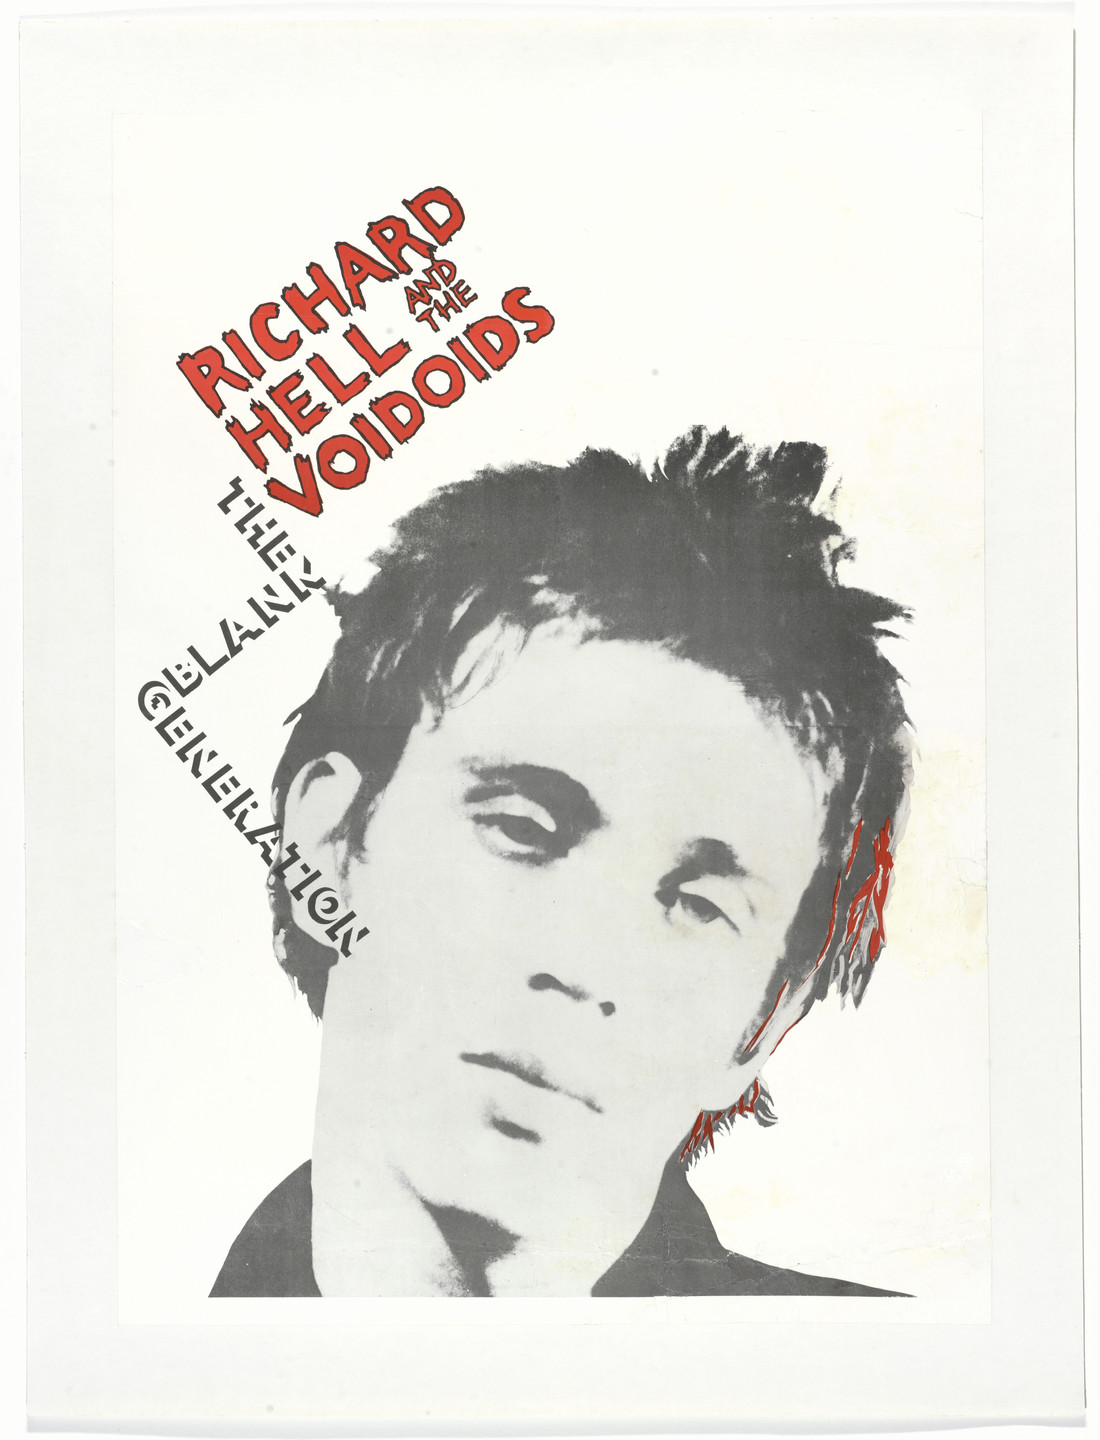 Unknown Designer, Kate Simon. Richard Hell & The Voidoids, The Blank Generation (Poster for the album distributed by Sire Records, New York). 1977